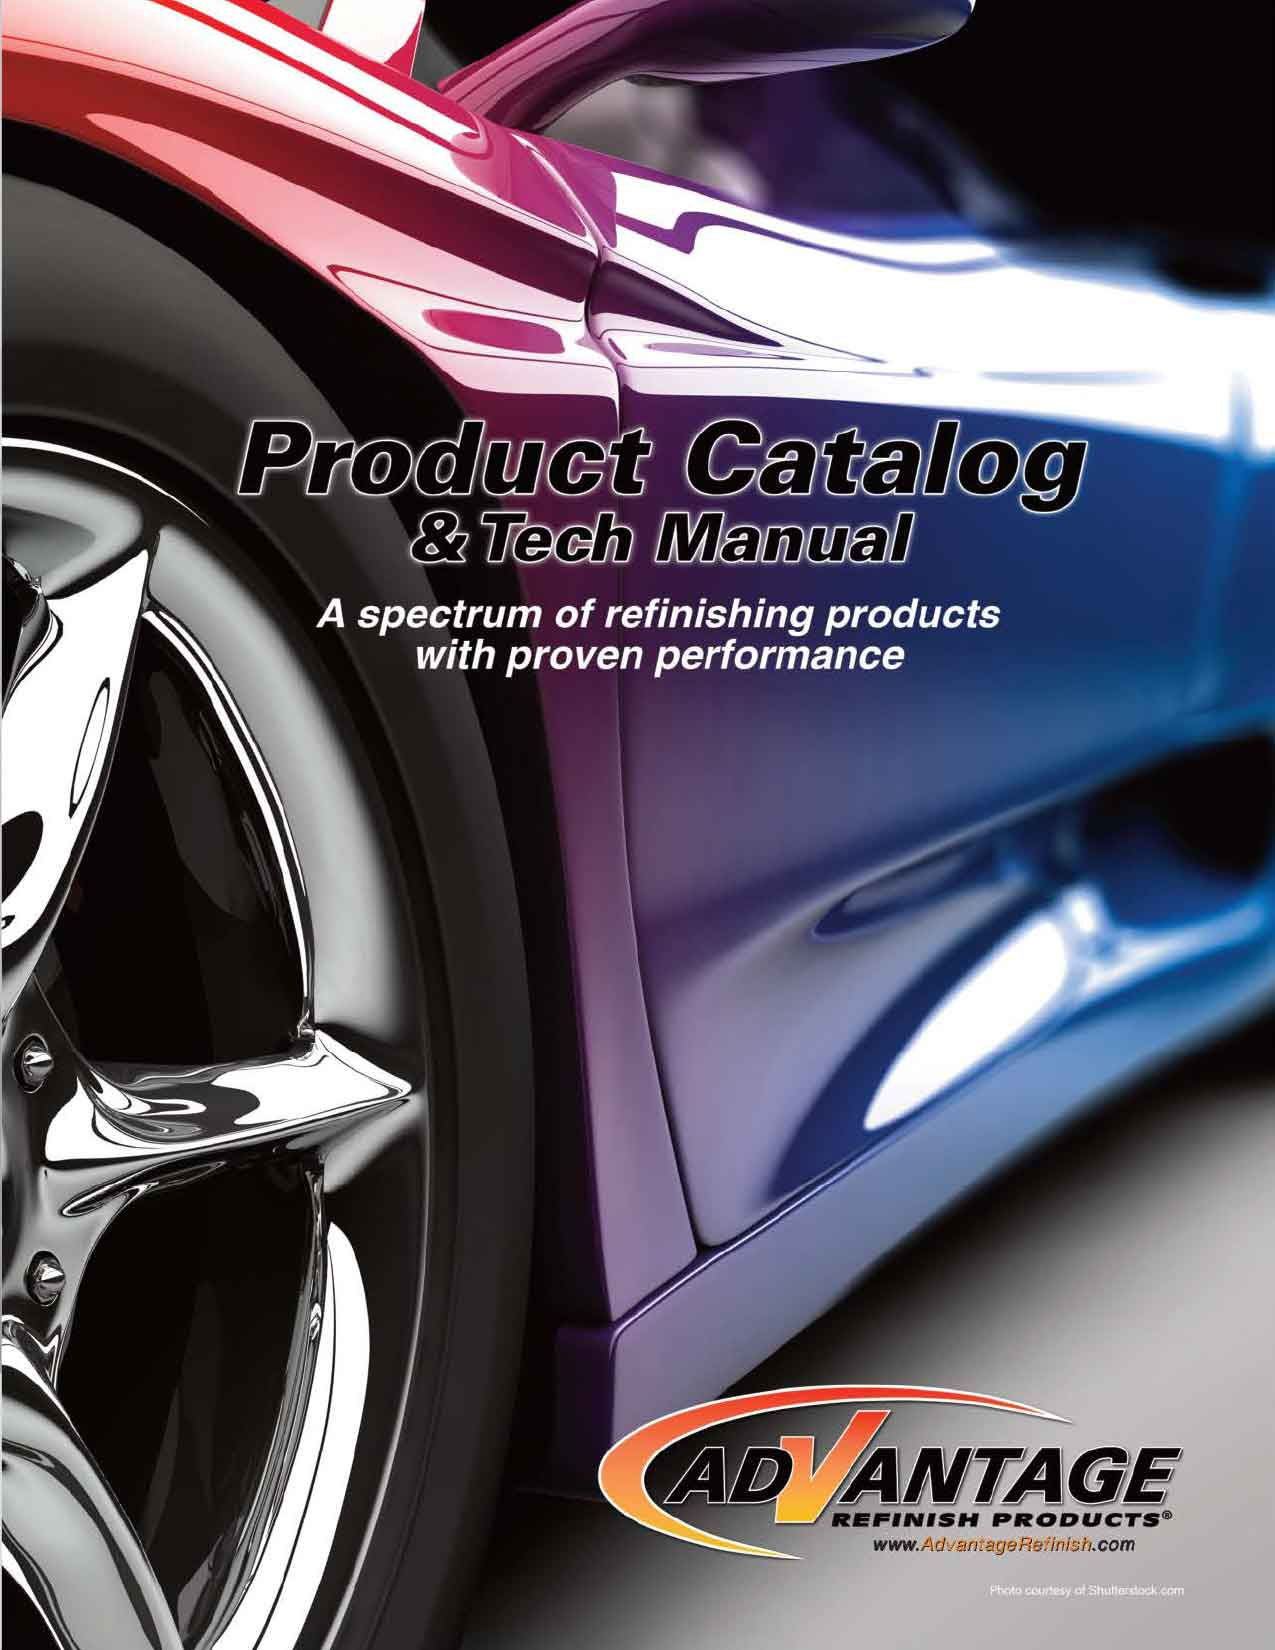 Advantage Product Catalog & Tech Manual